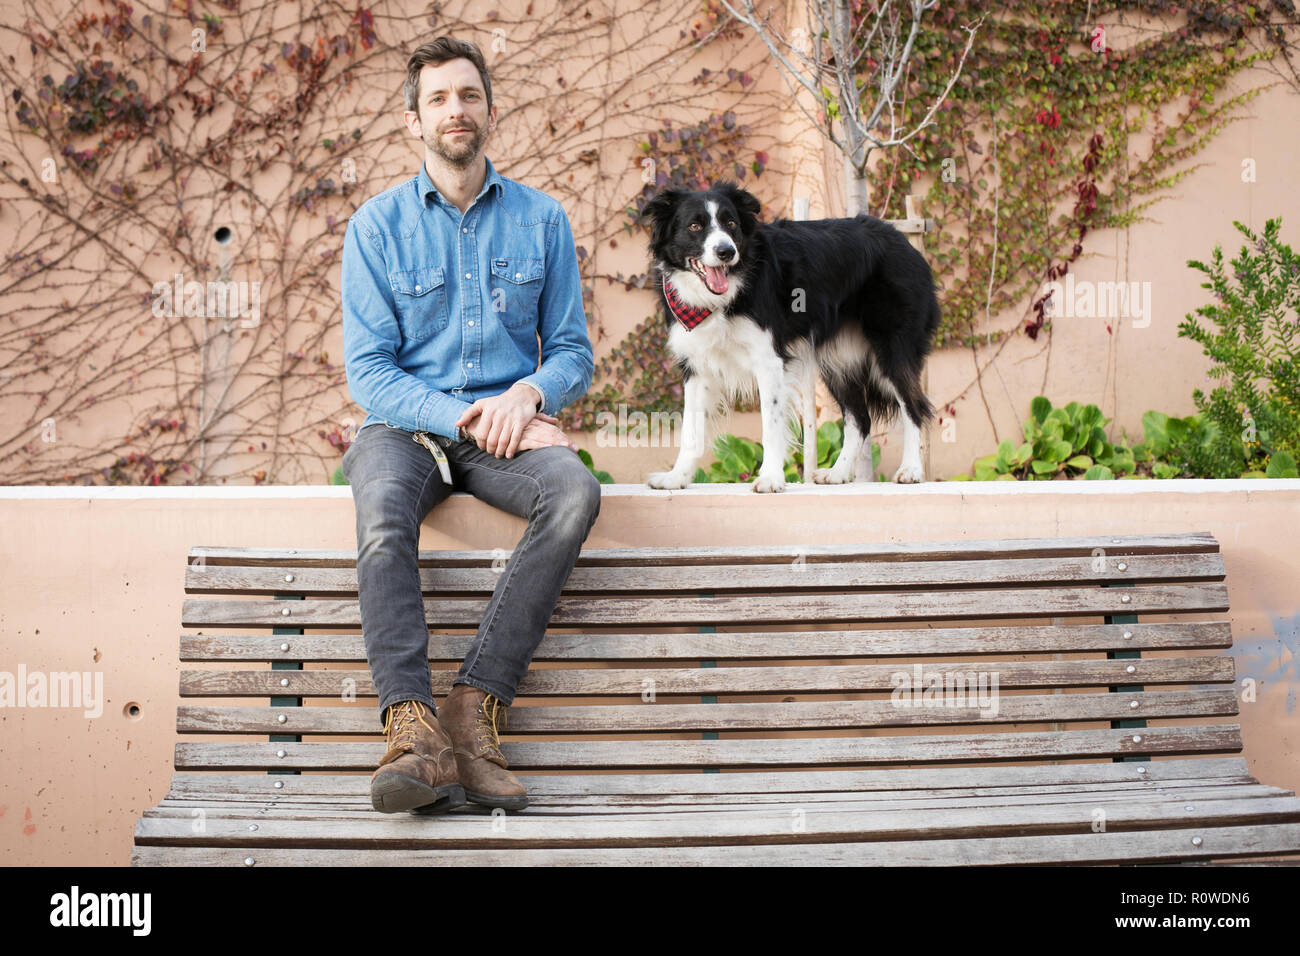 Portrait of graphic designer Andrew Knapp with his dog Momo, a border collie, in a stop in Lisbon, while traveling through Europe. - Stock Image